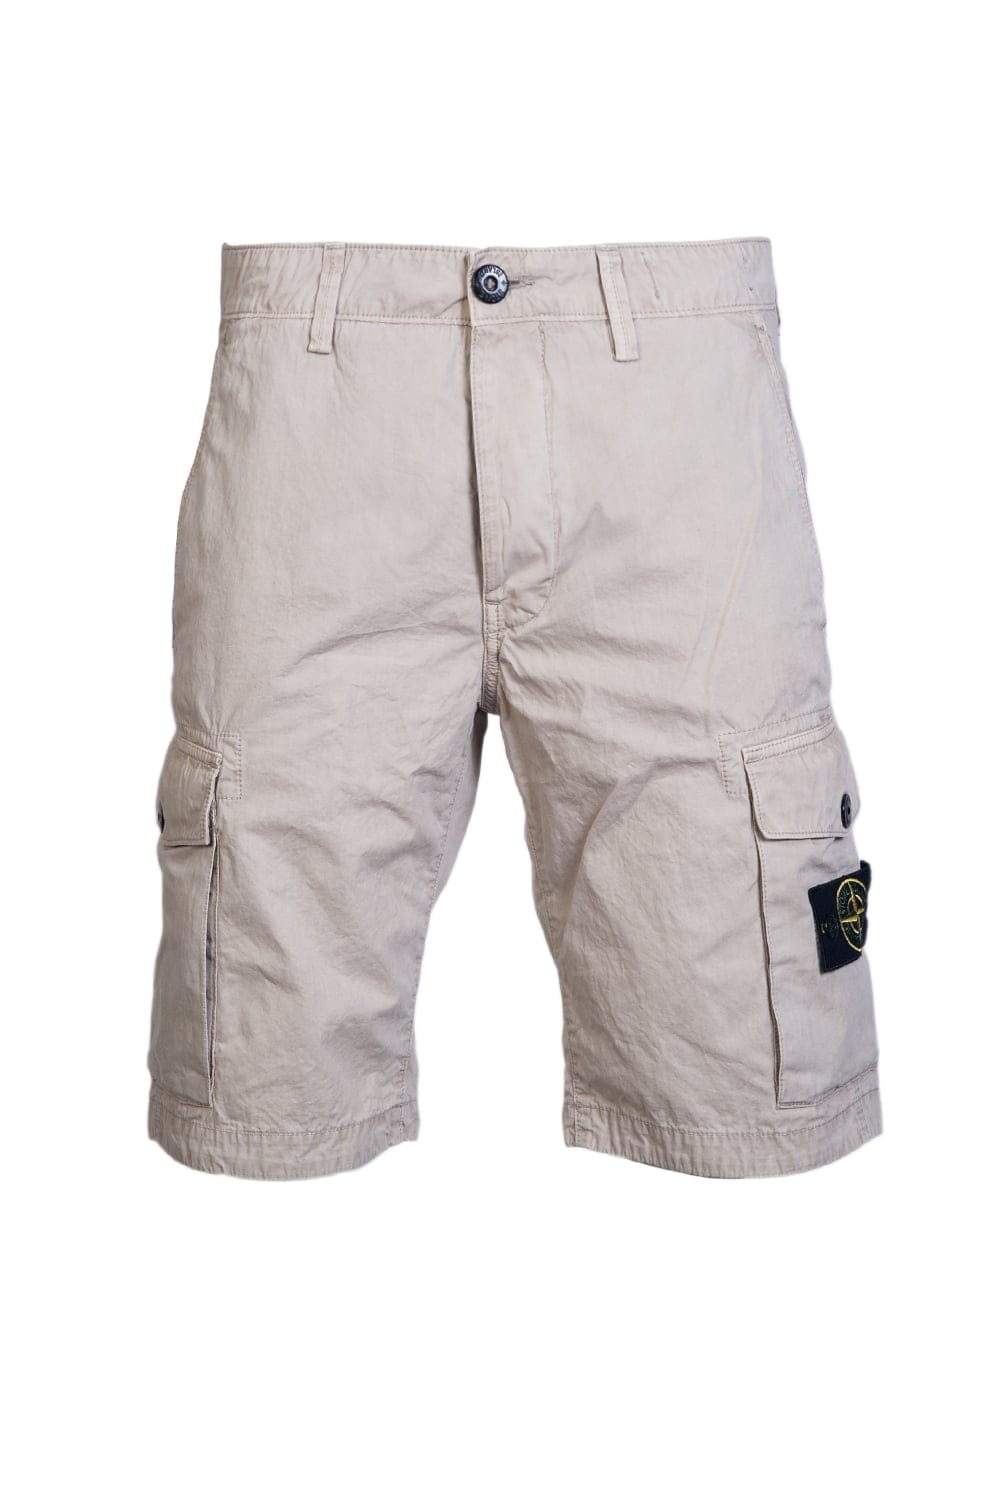 stone island shorts 6615ls2wn clothing from sage clothing uk. Black Bedroom Furniture Sets. Home Design Ideas